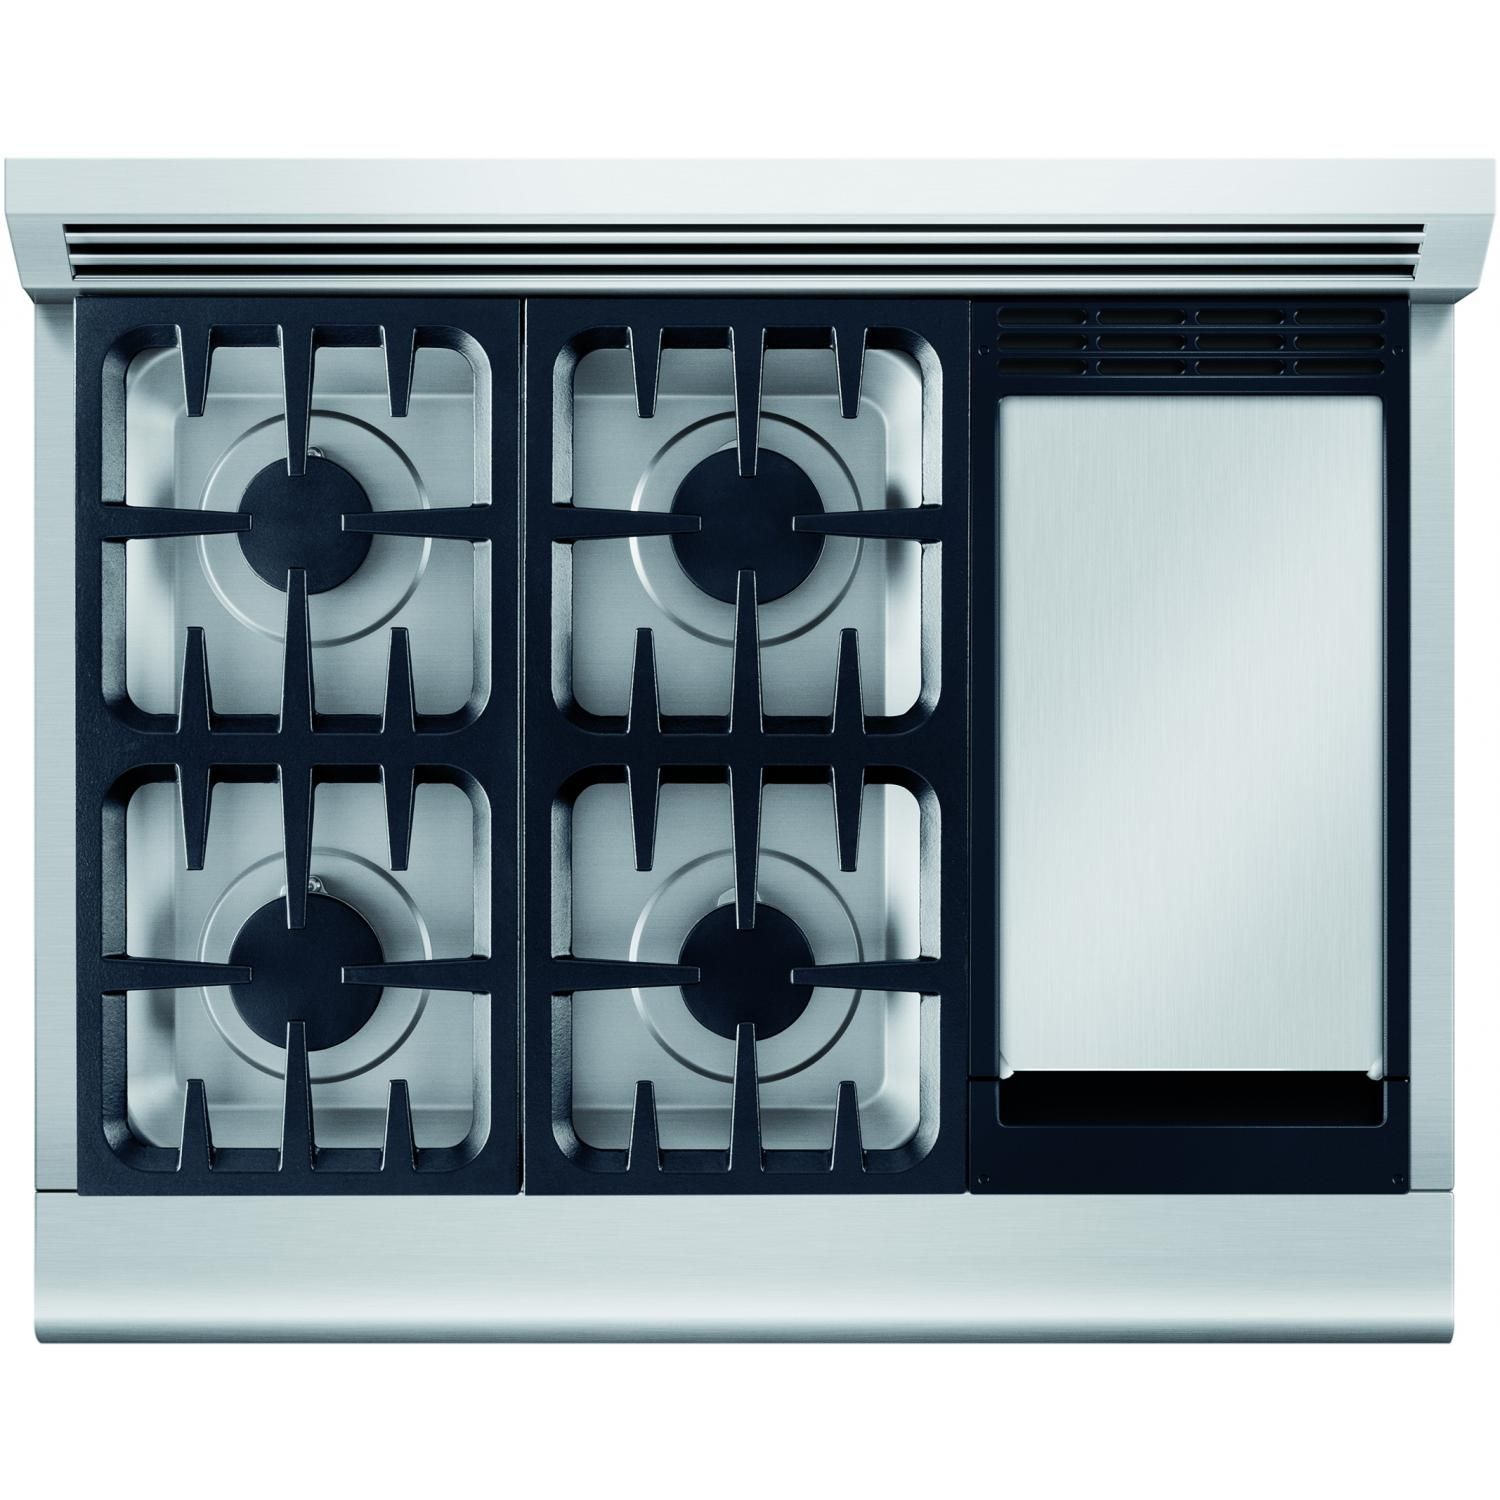 DCS Professional 36-Inch Natural Gas Range - Cooktop Layout | home ...